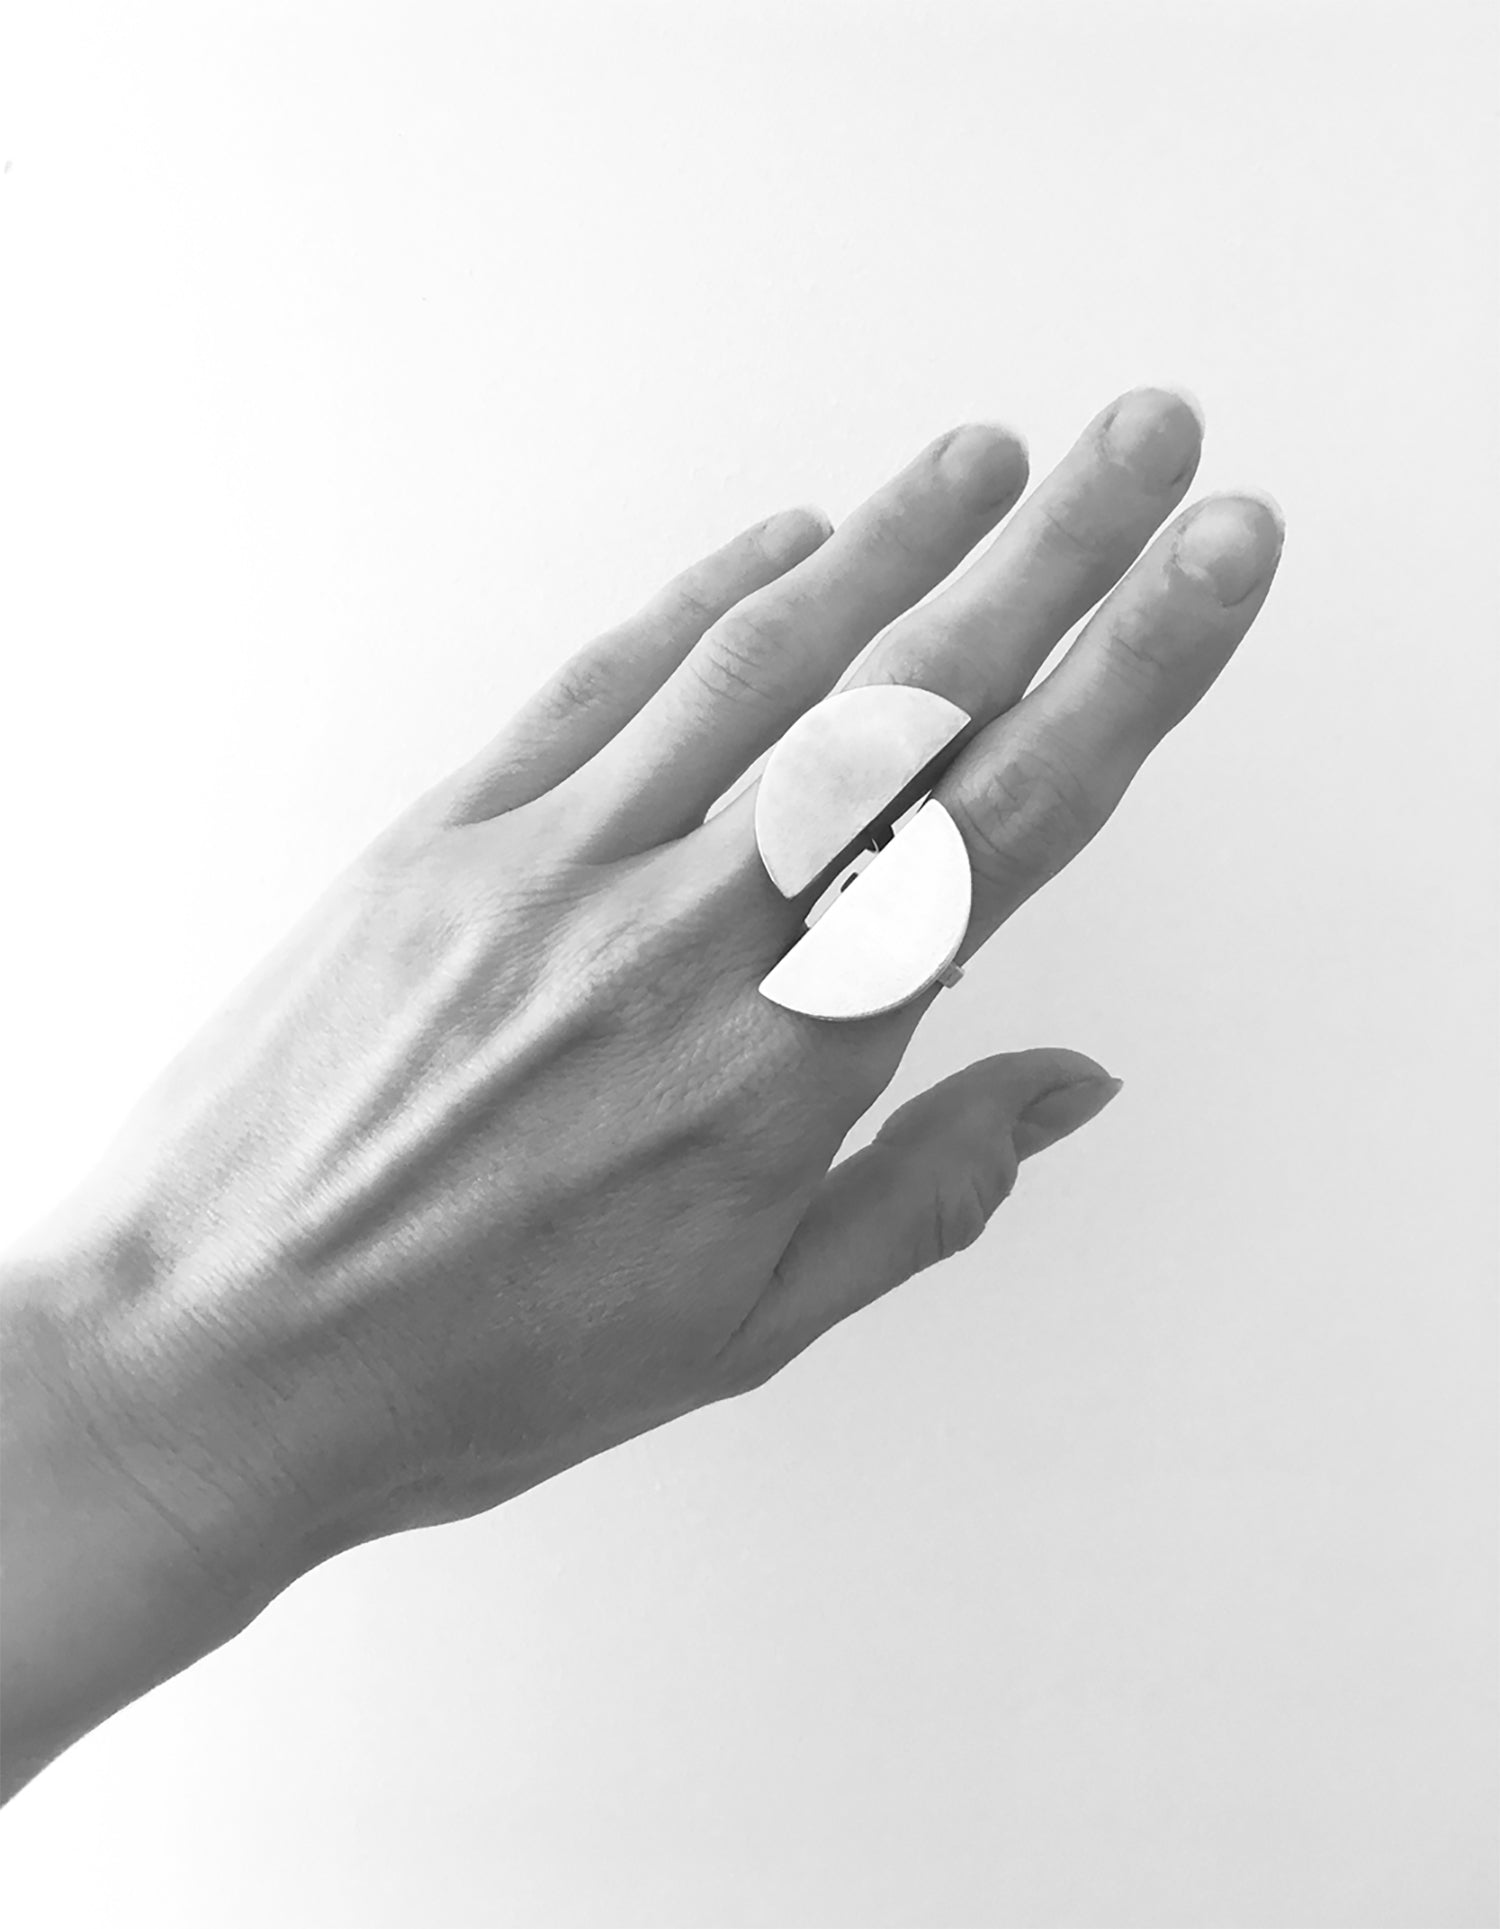 bague llayers quarter argent - llayers jewelry quarter ring in silver - minimal moon ring